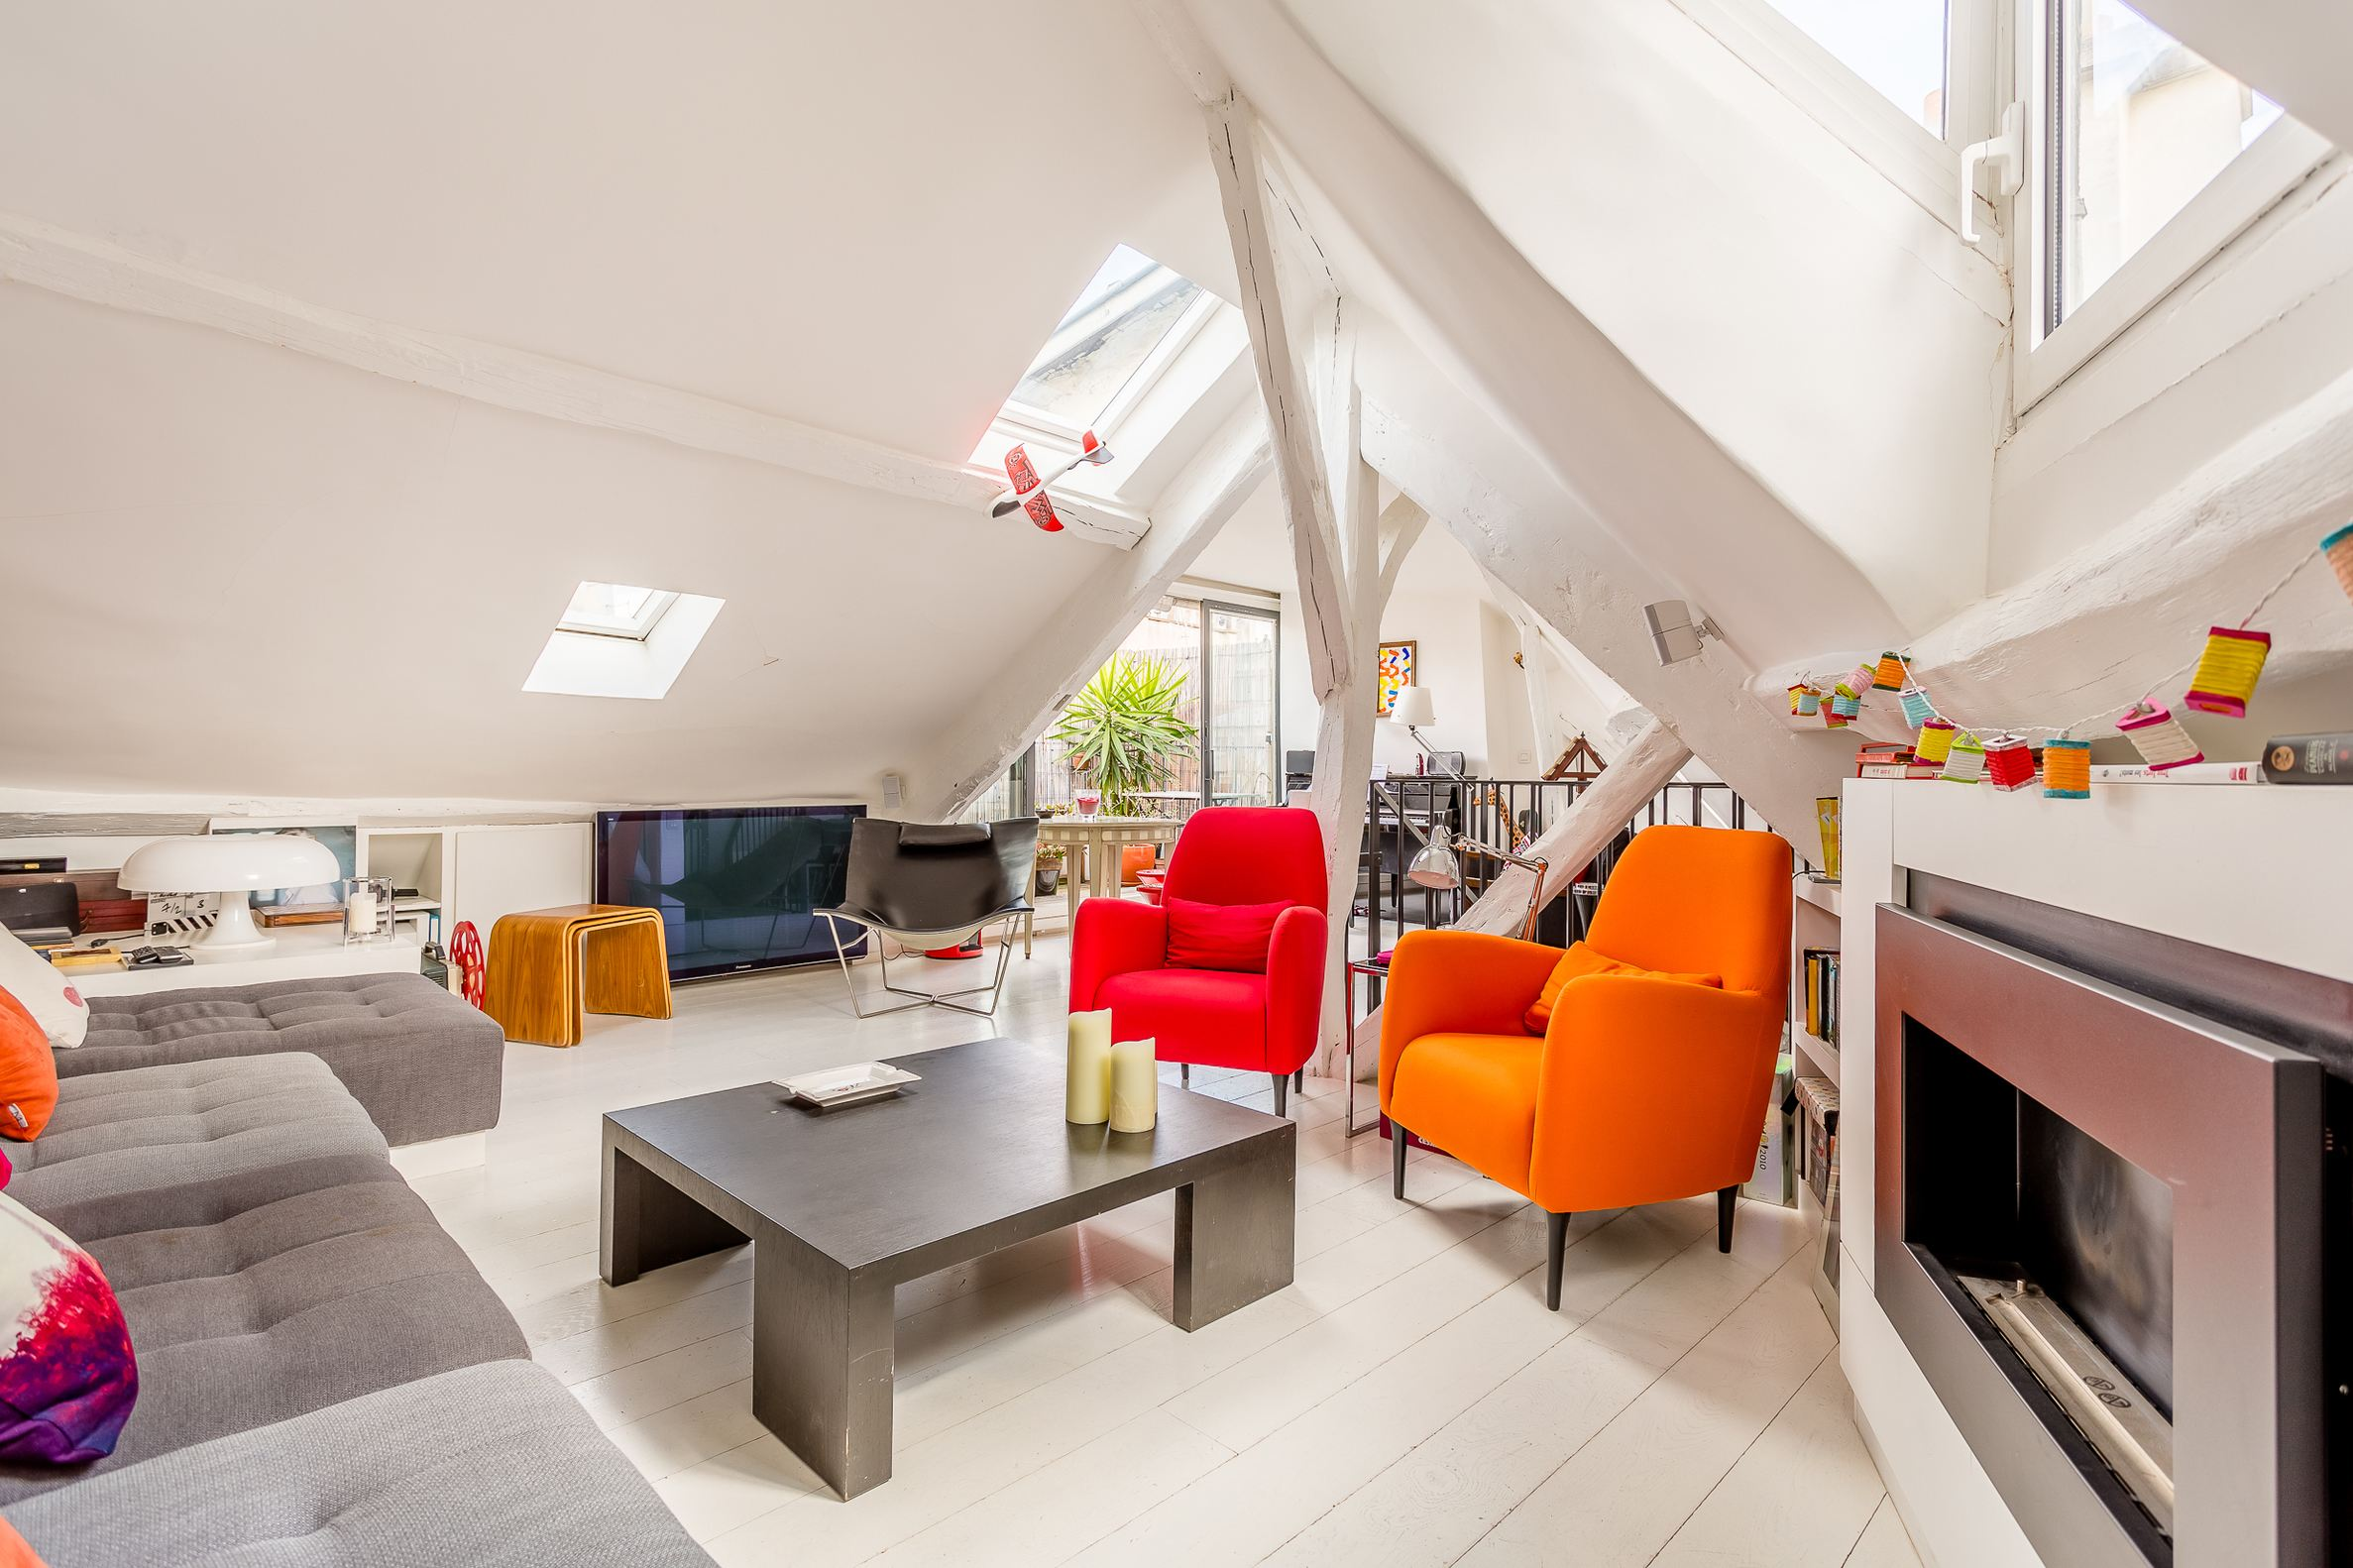 sales property at La Monnaie area in St-Germain-des-Prés -top floor with terrace